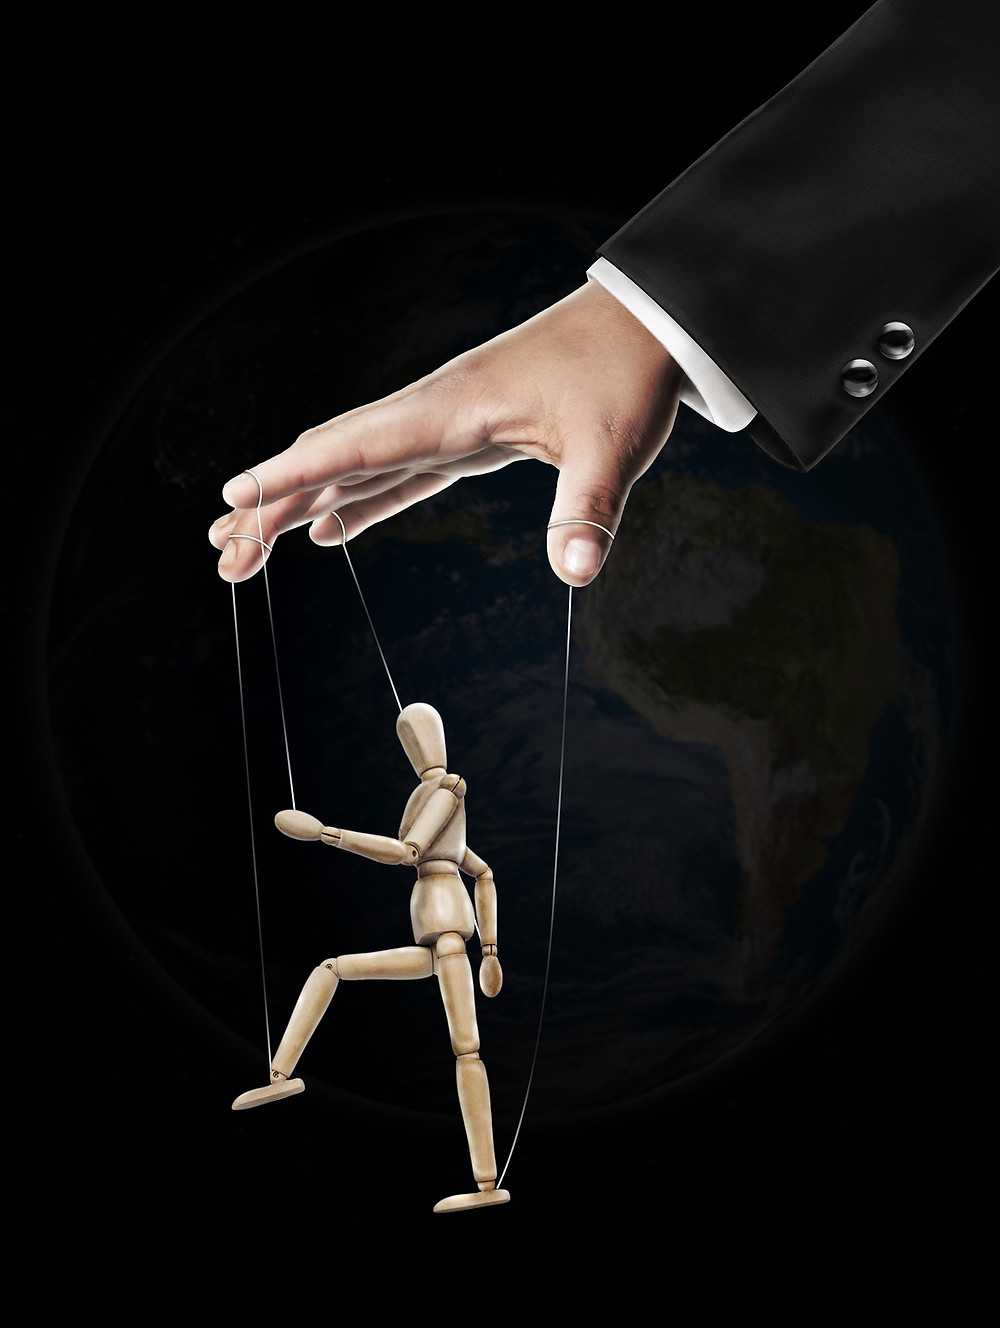 actions being manipulated